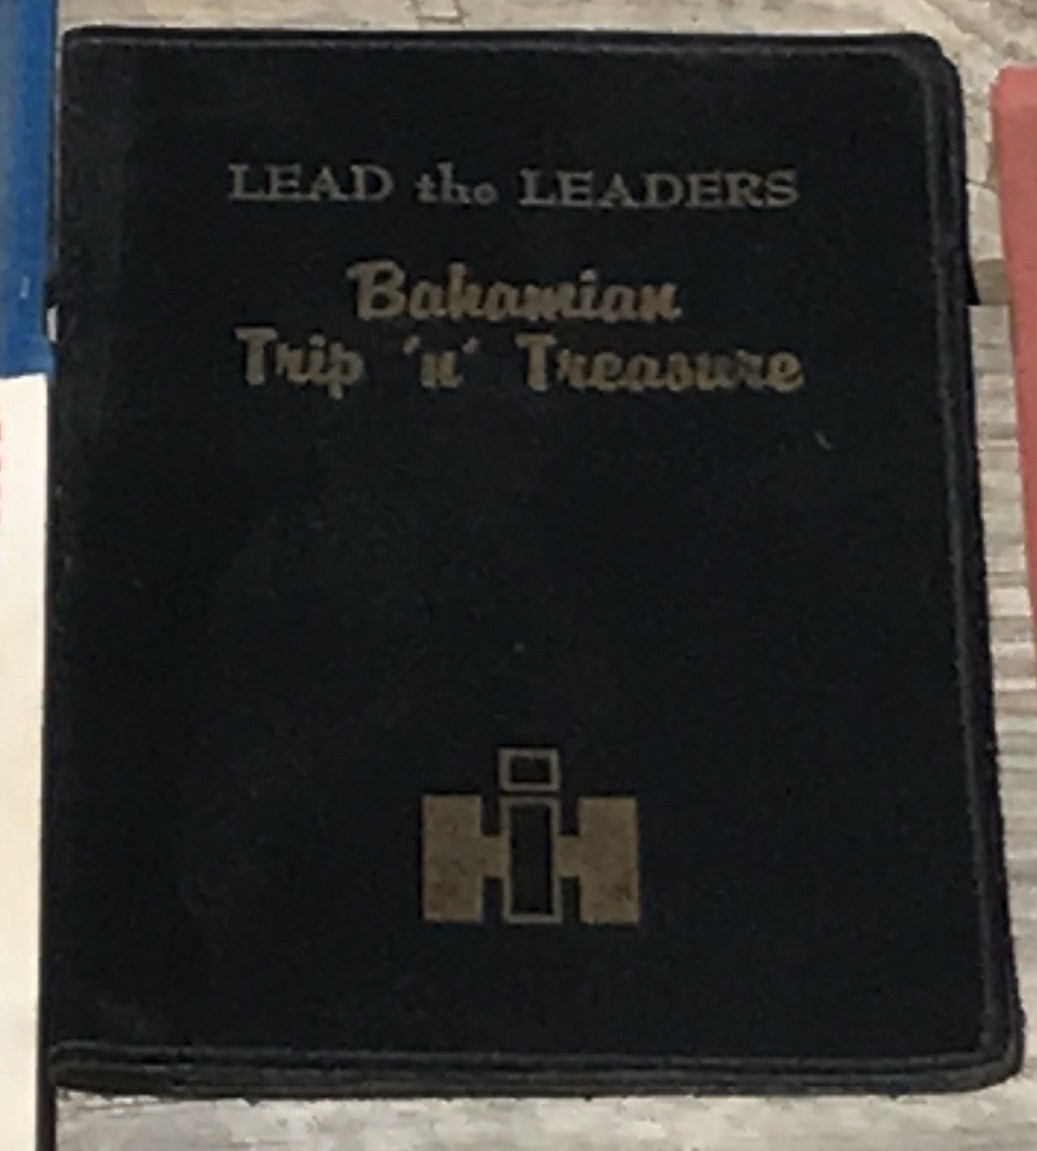 Lot 3 - Bahamian Trip-n-Treasure Ticket Holder